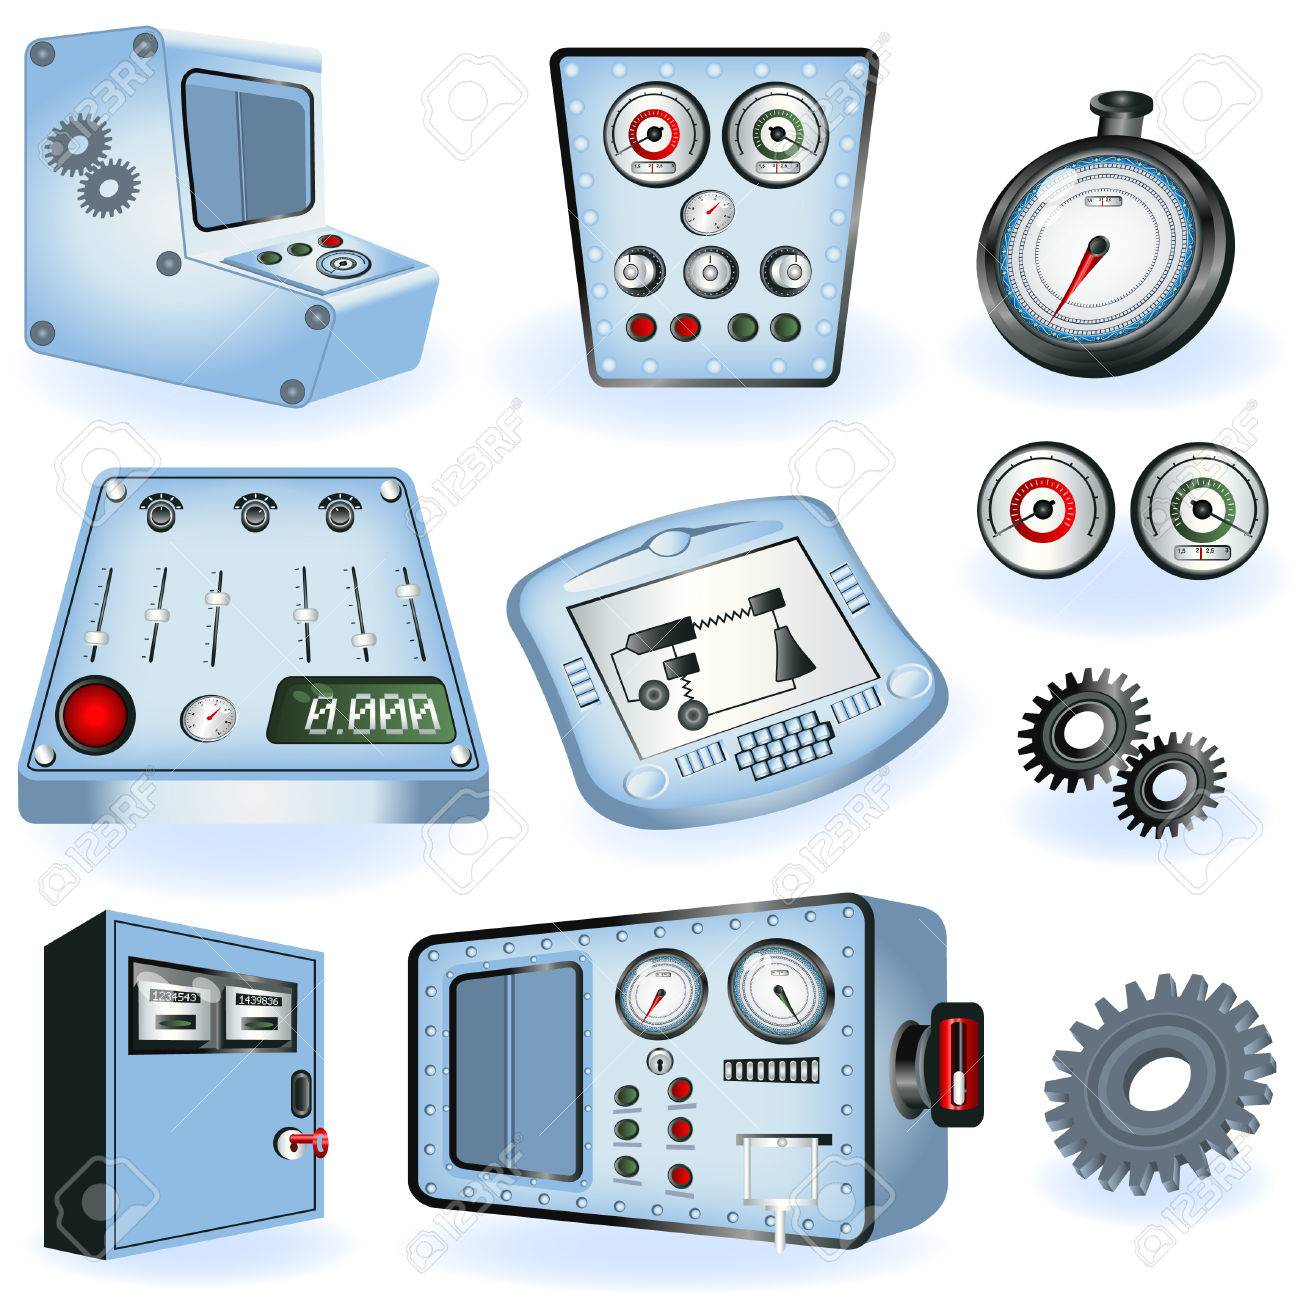 A collection of different machine operators - electric controls illustrations Stock Vector - 8903517